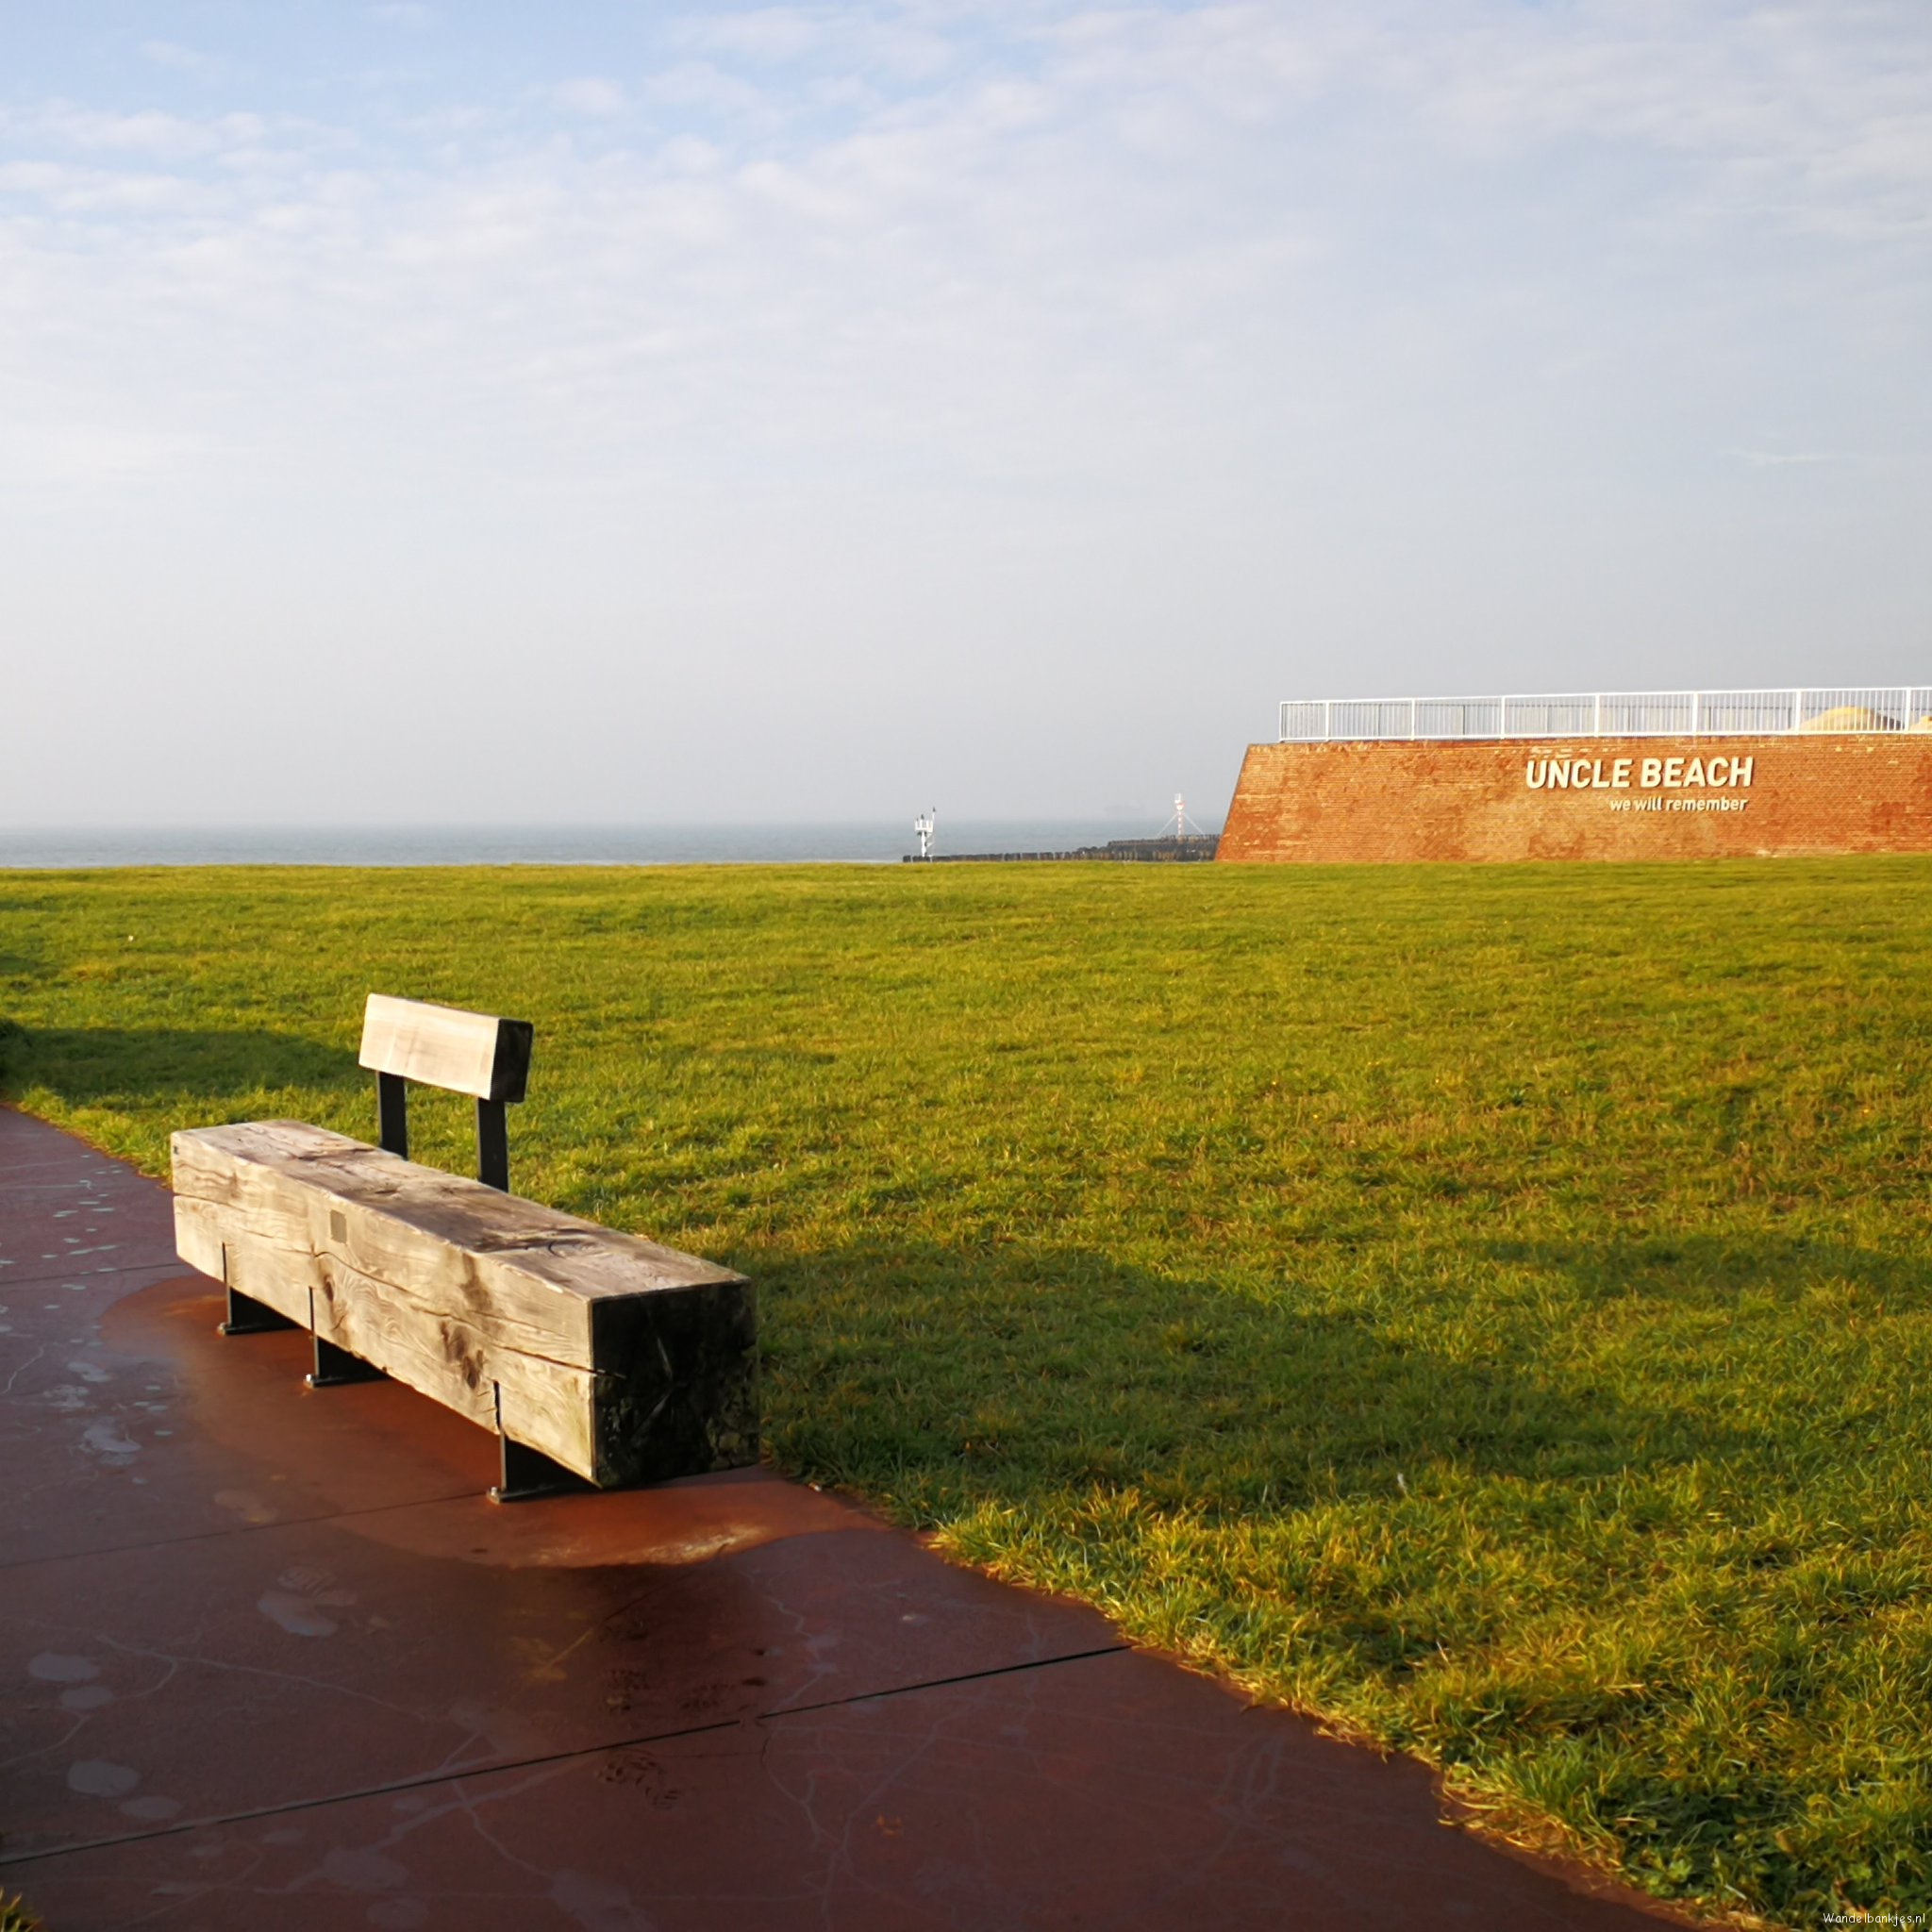 rt-adawestpants-uncle-beach-memorial-on-the-orange-dike-to-vlissingen-with-view-over-the-water-https-t-co-0b0xfwhtla